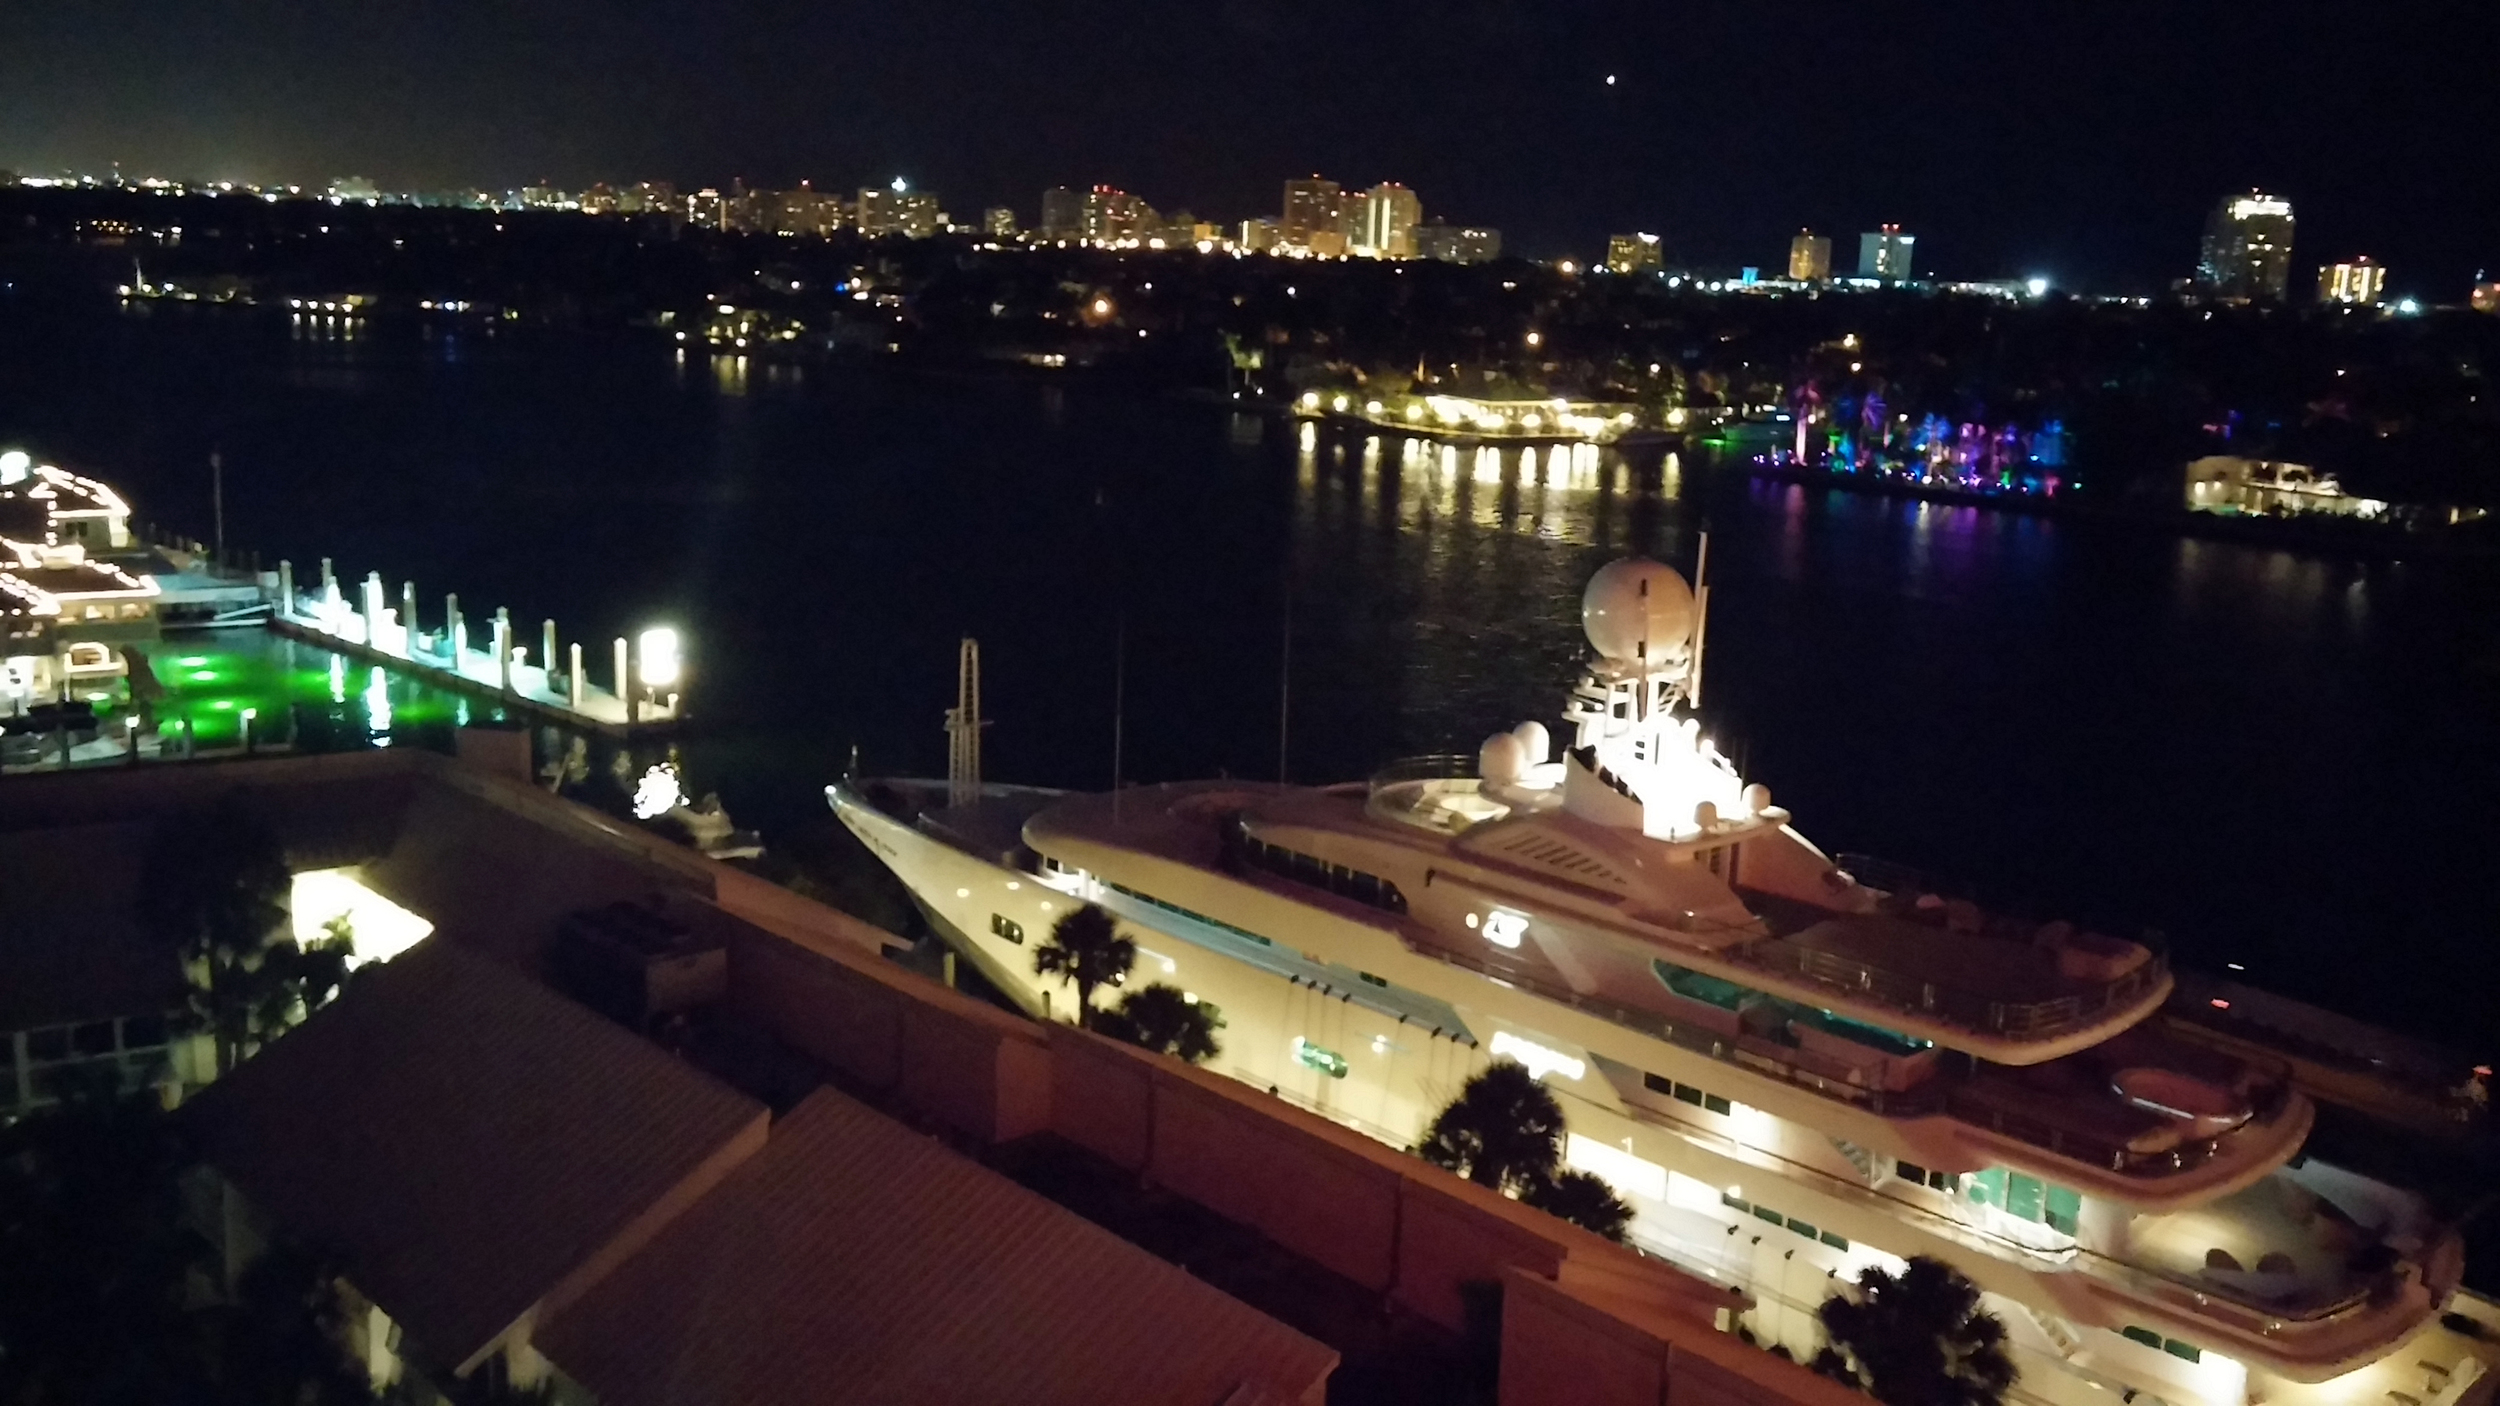 Hilton Fort Lauderdale Marina, view from our room